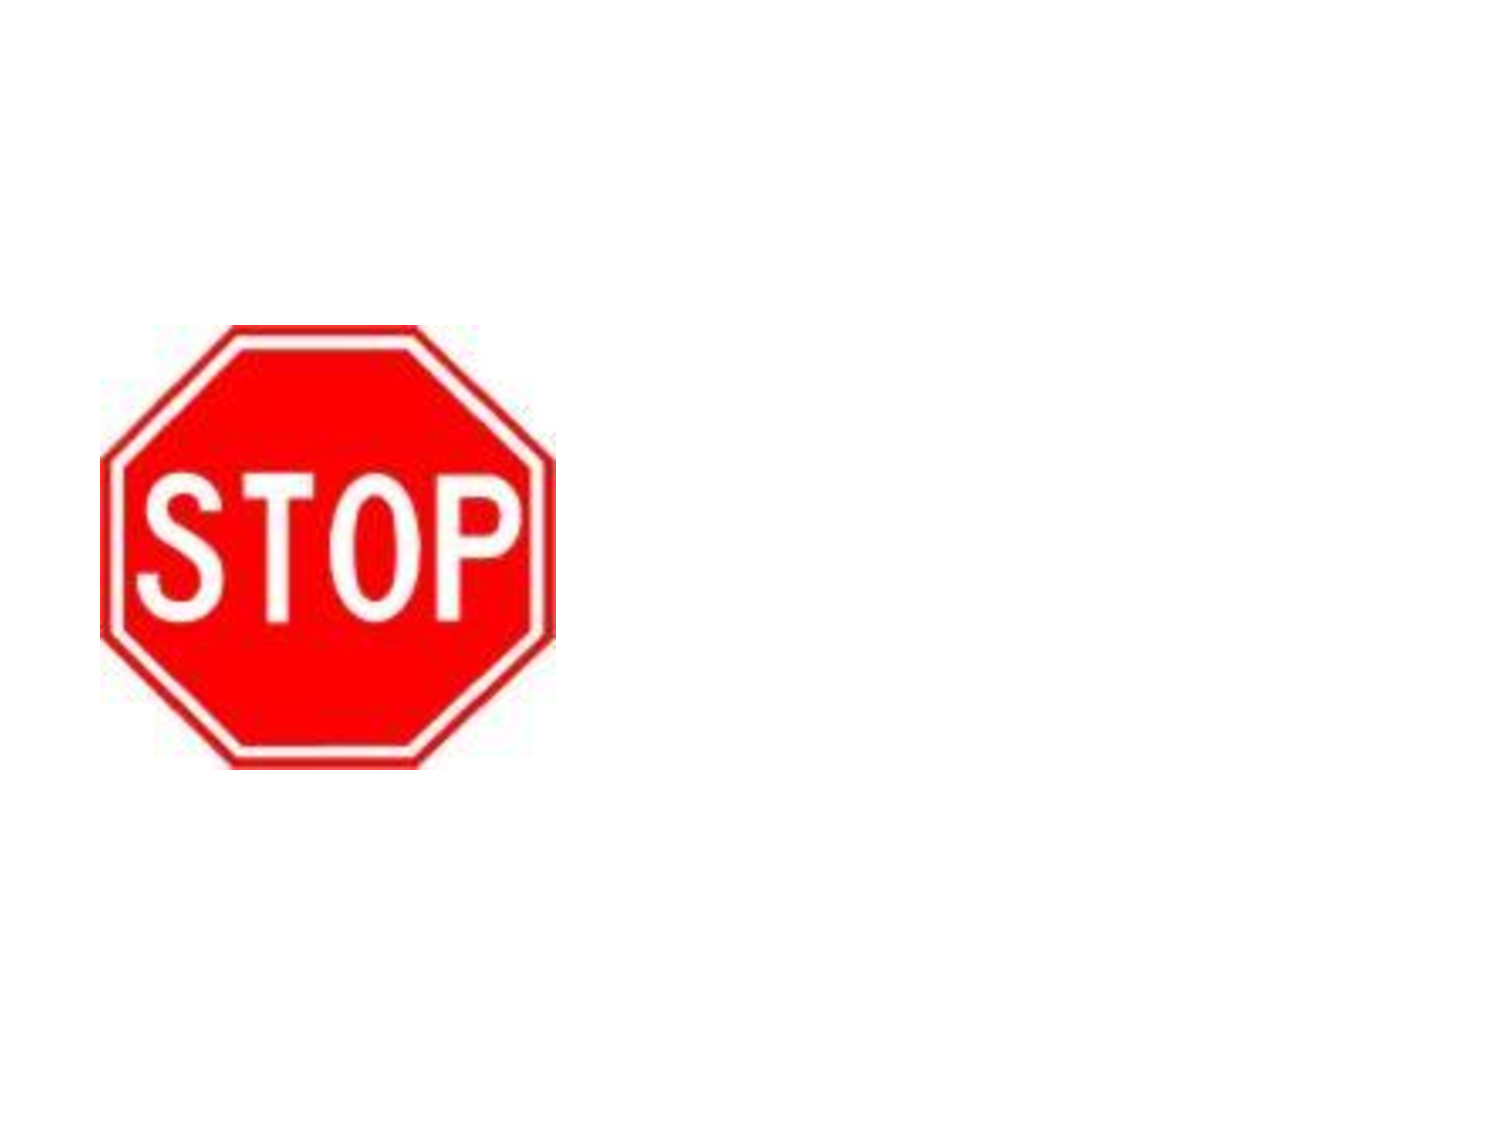 Stop clipart small Clipartix 2 sign stop Printable